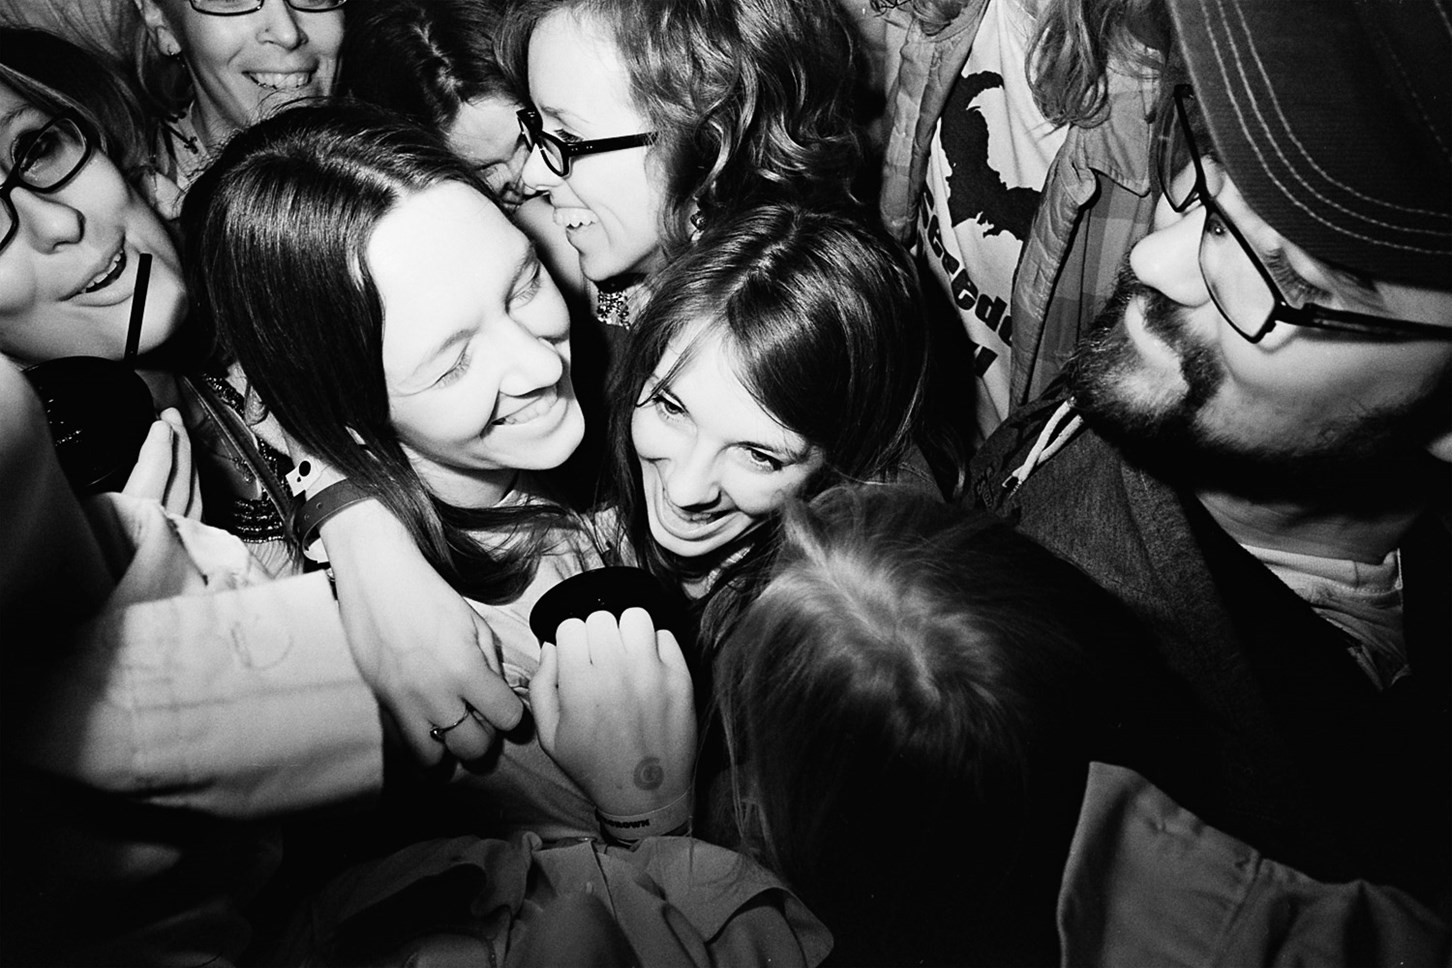 Group Hug, May 2012